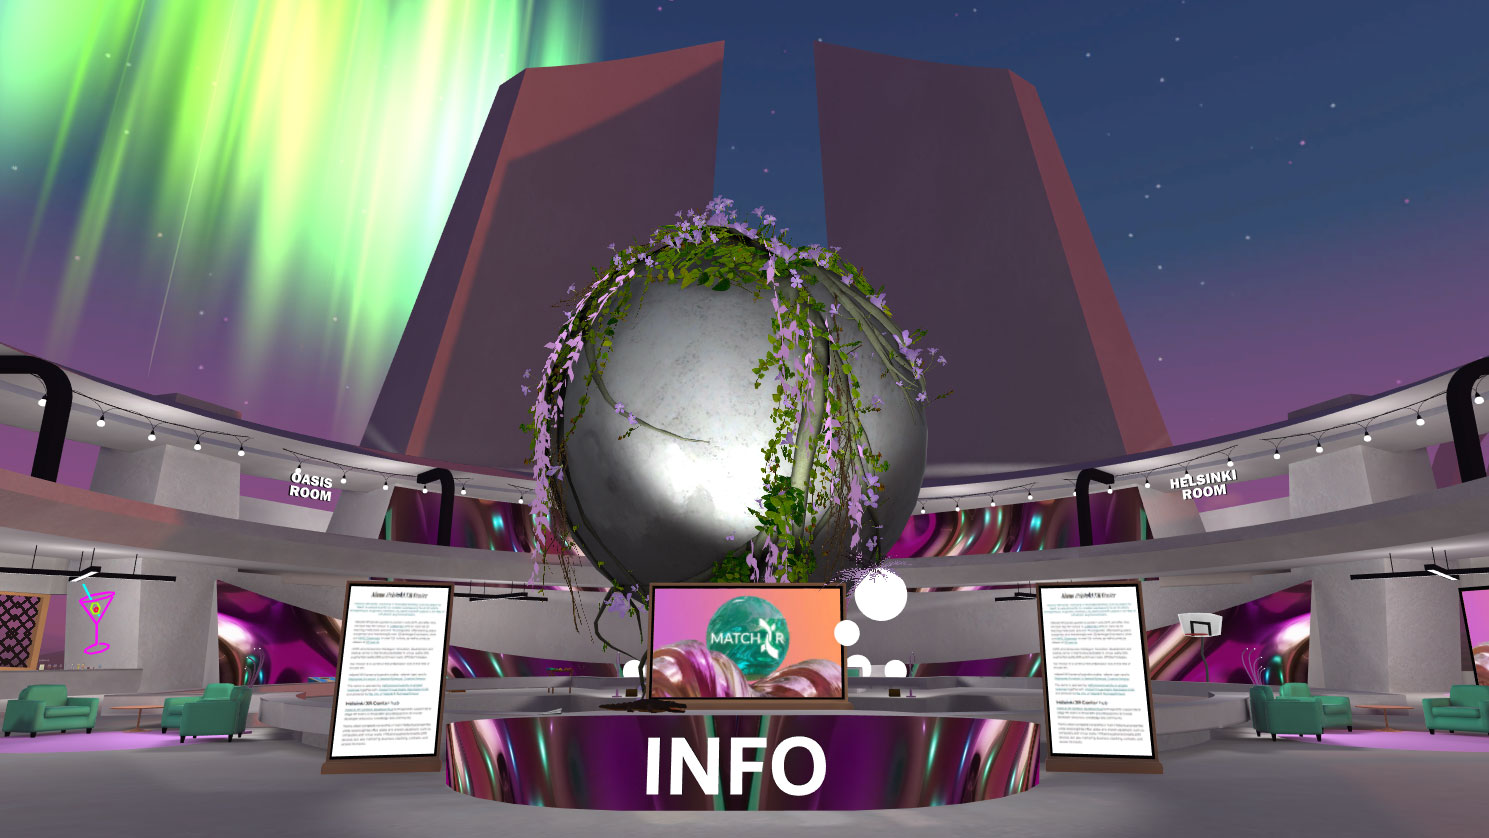 AltspaceVR screenshot: An information desk in the middle of a virtual venue.